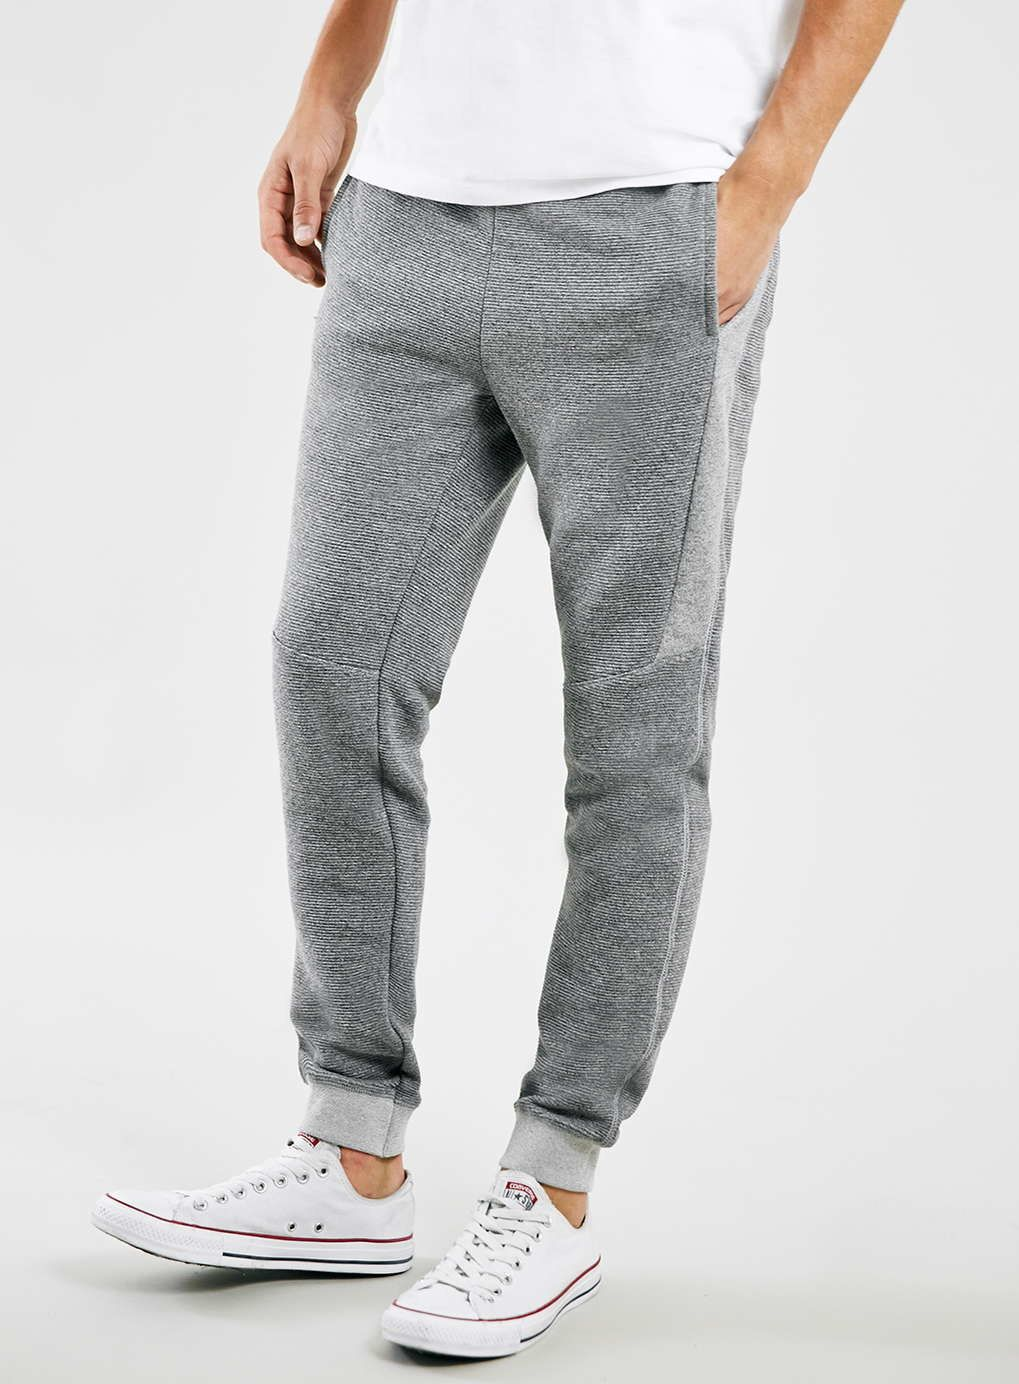 d03d57b326f8 9 Socially-Acceptable Pairs of Sweatpants in 2019